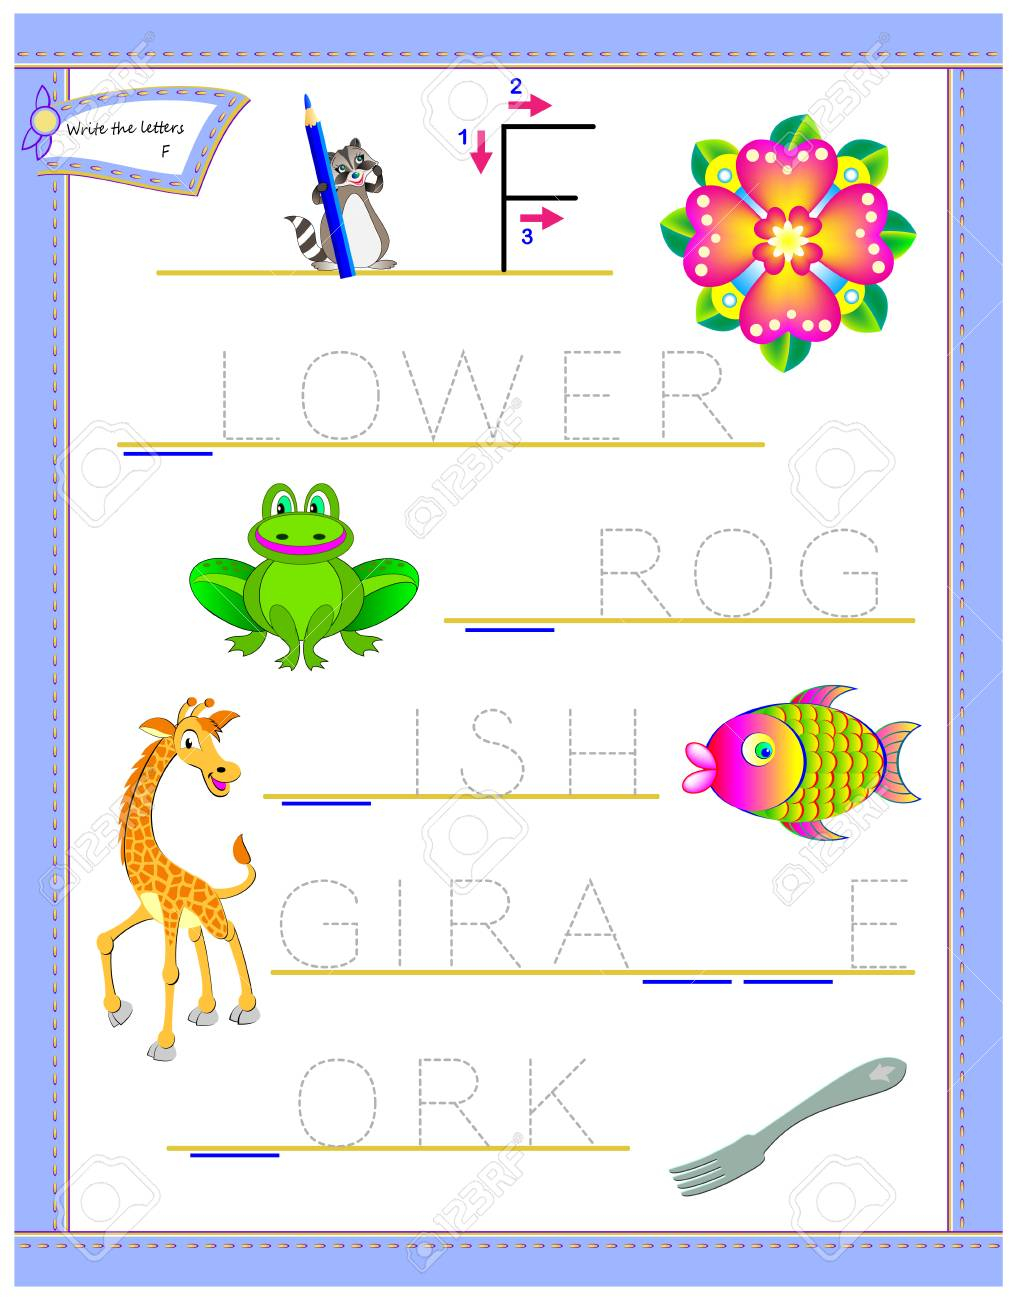 Tracing Letter F For Study English Alphabet. Printable Worksheet..